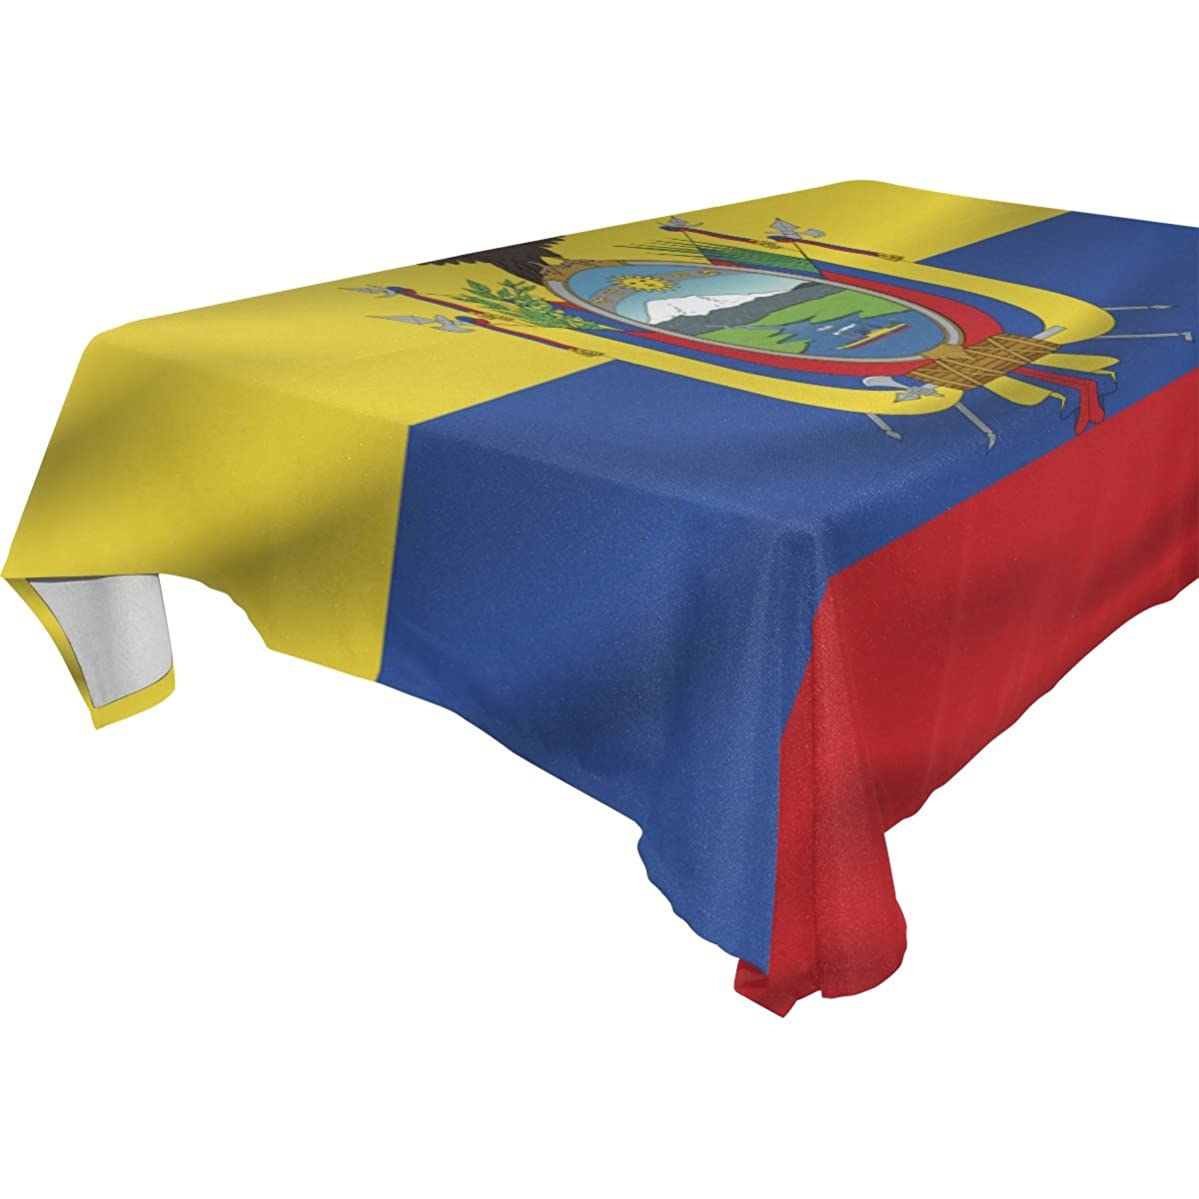 Ecuador Flag 100% Polyester Tablecloth Table Cover for Dinner Parties Picnic Kitchen Home Decor, Multi